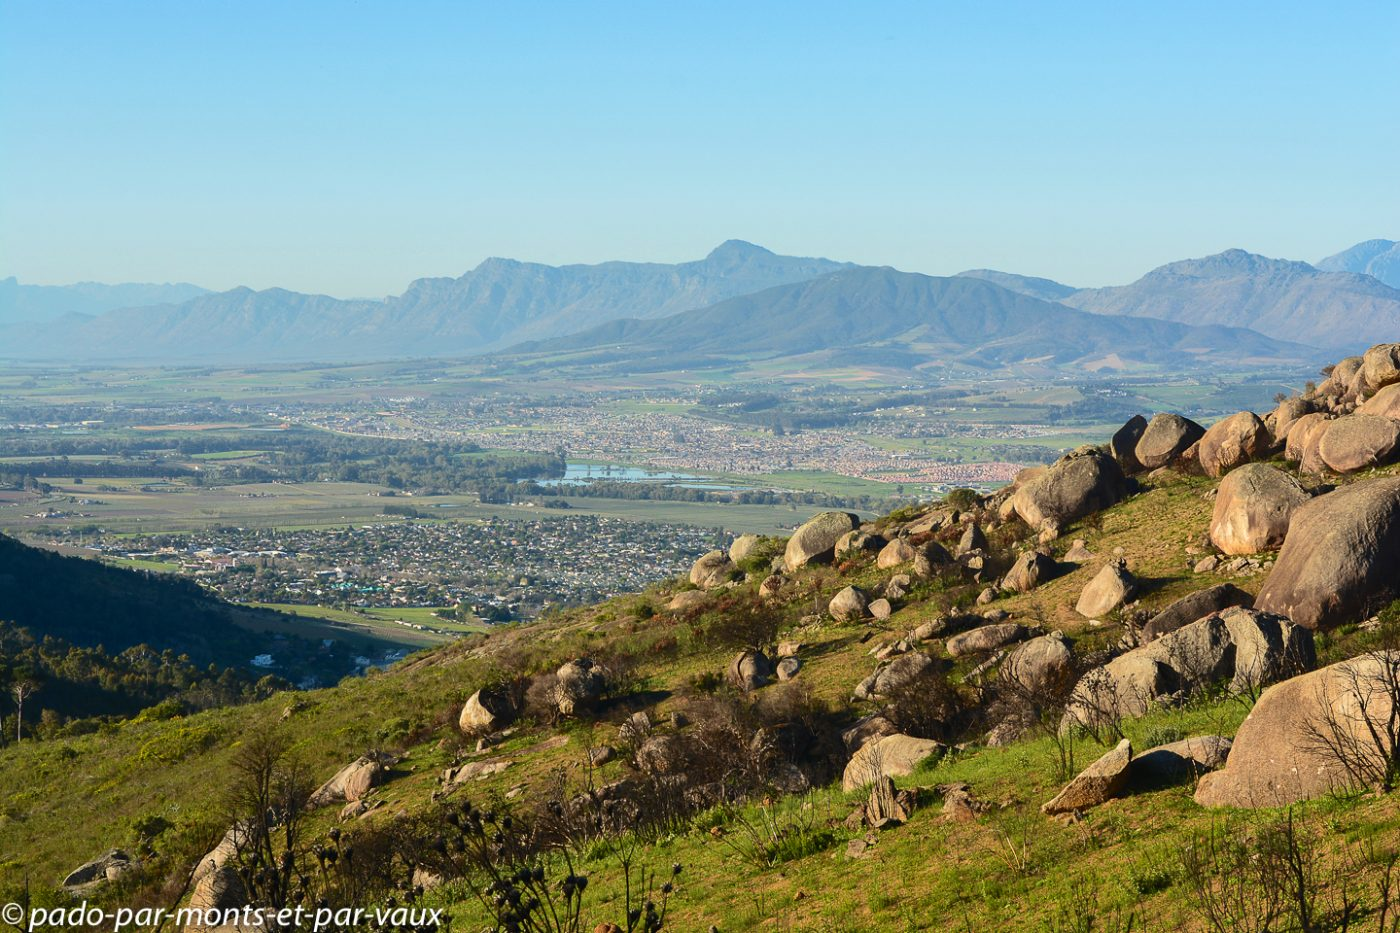 Paarl Mountain nature reserve